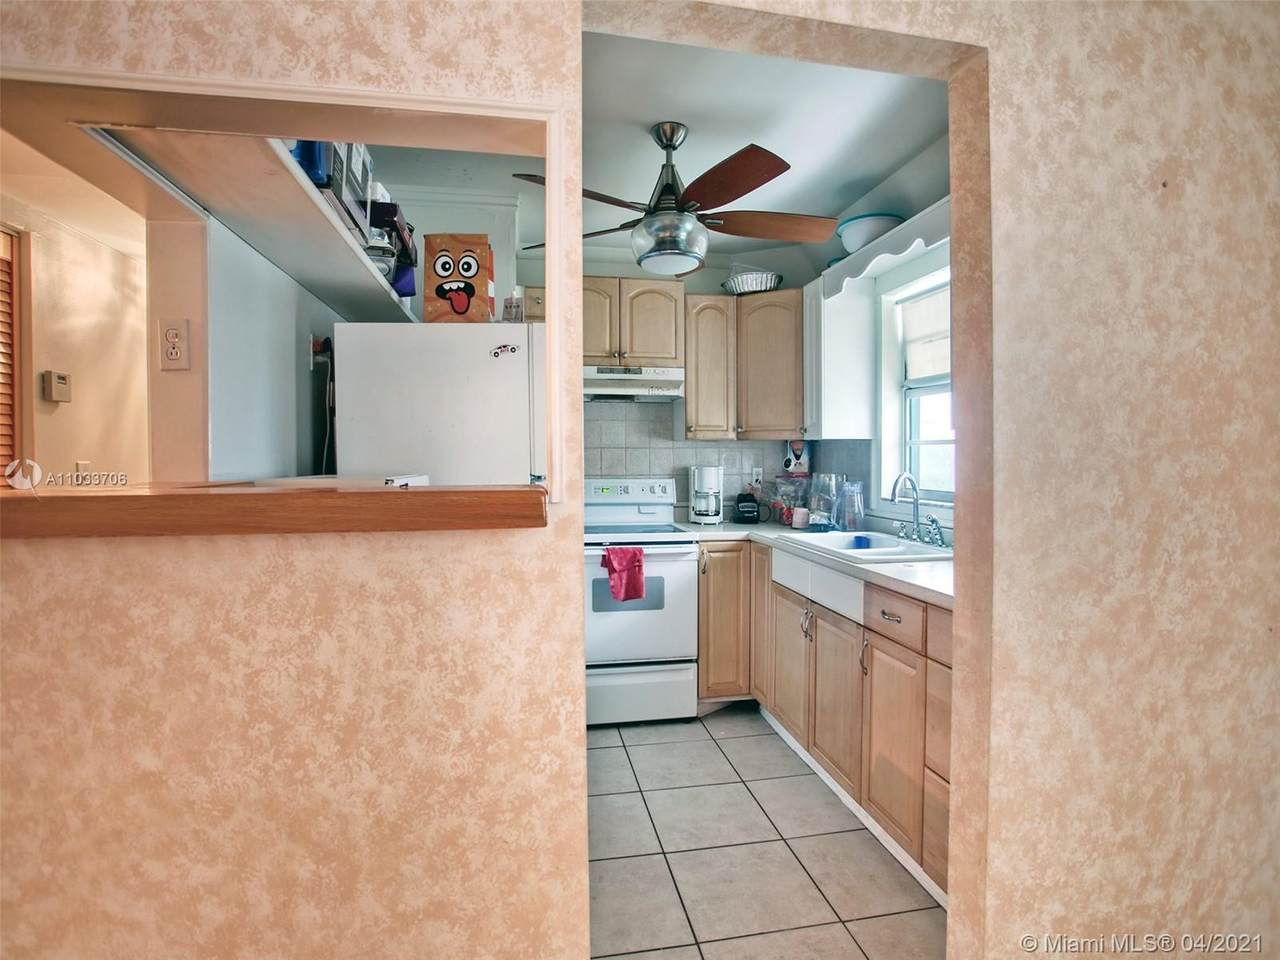 https://bt-photos.global.ssl.fastly.net/miami/1280_boomver_1_A11033706-2.jpg